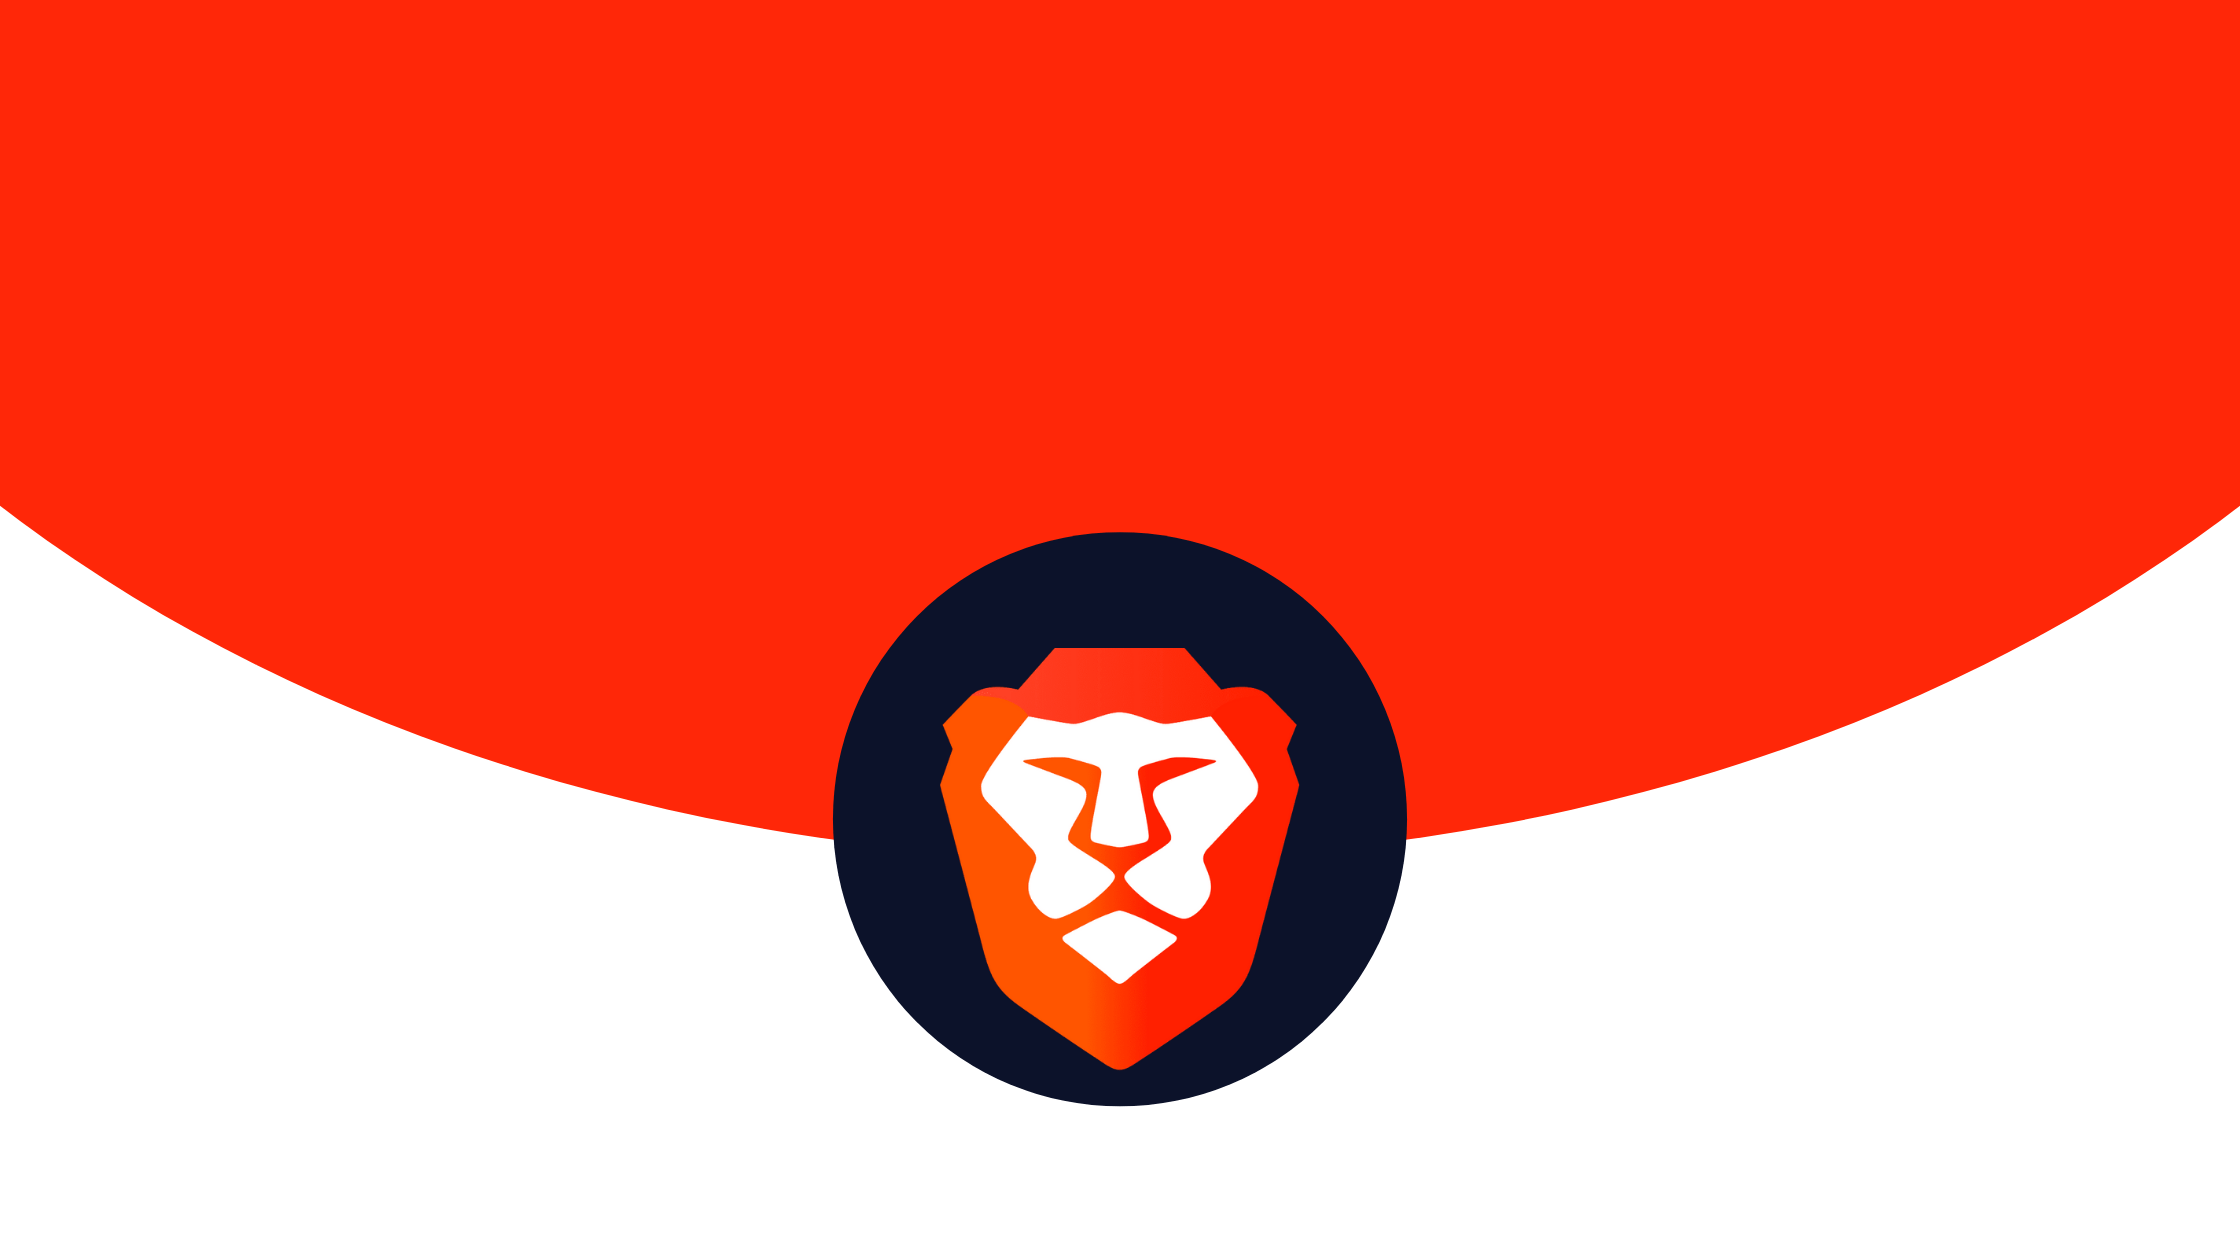 Brave Browser for Android revamped settings with new layout and icons